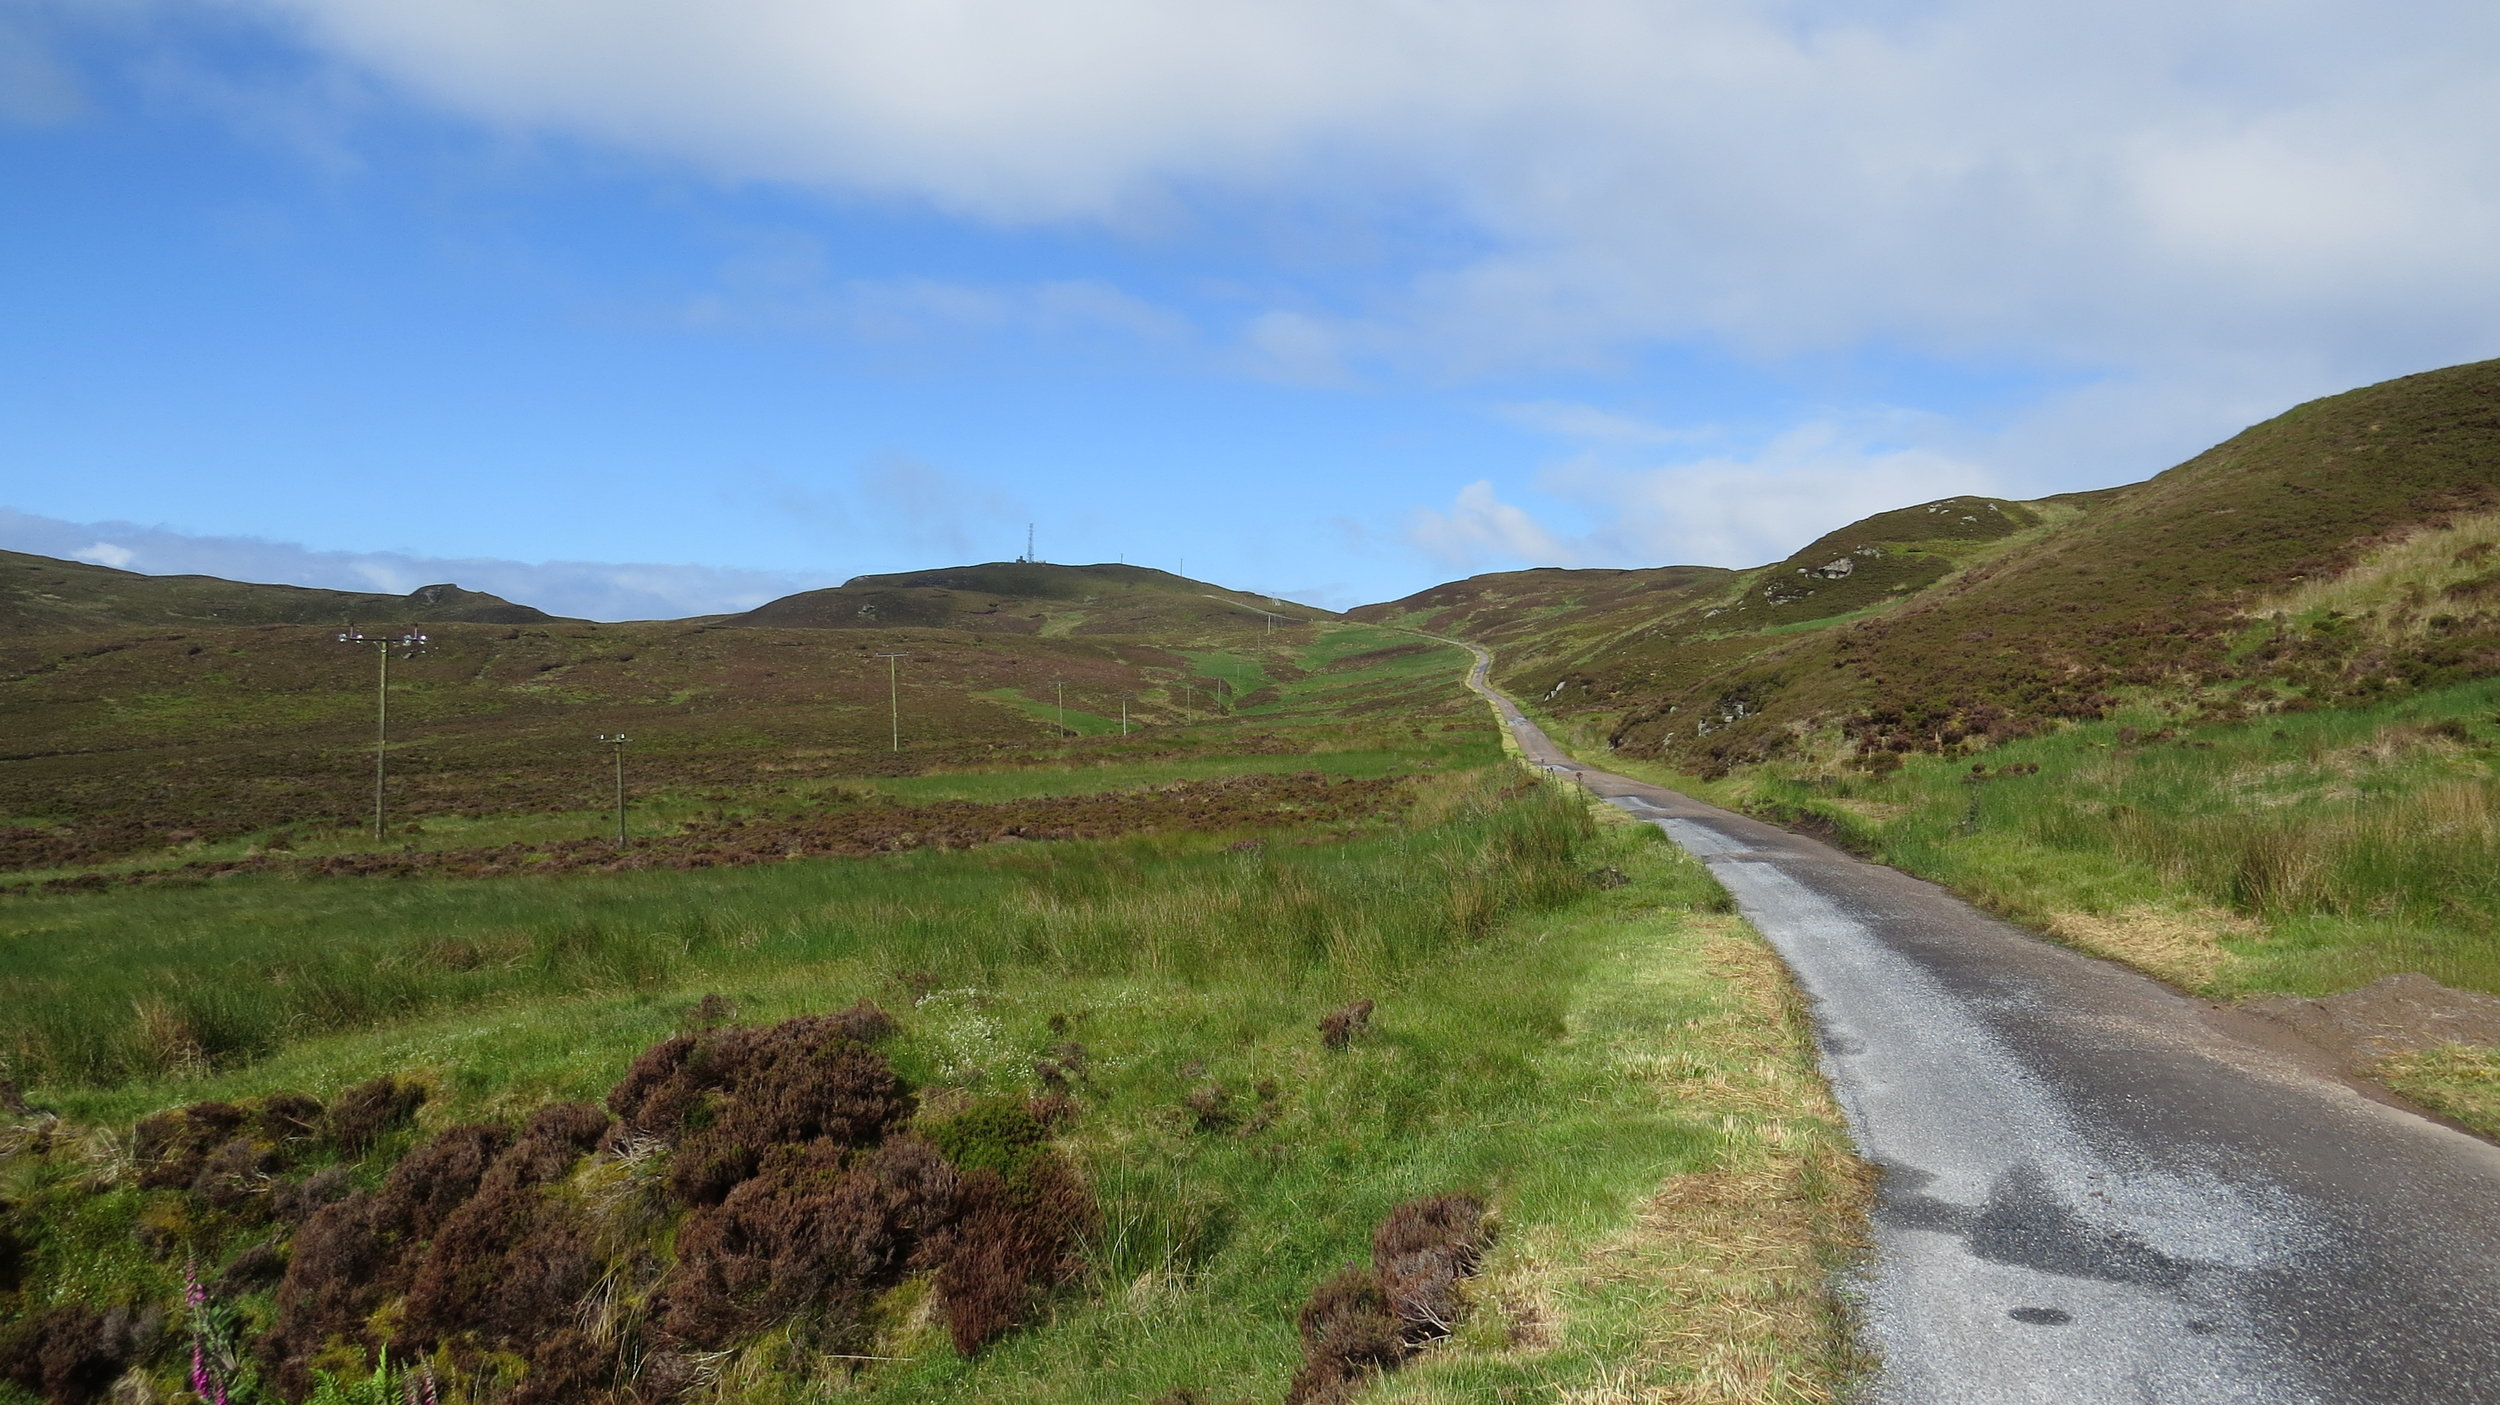 Looking up Road to the Mull